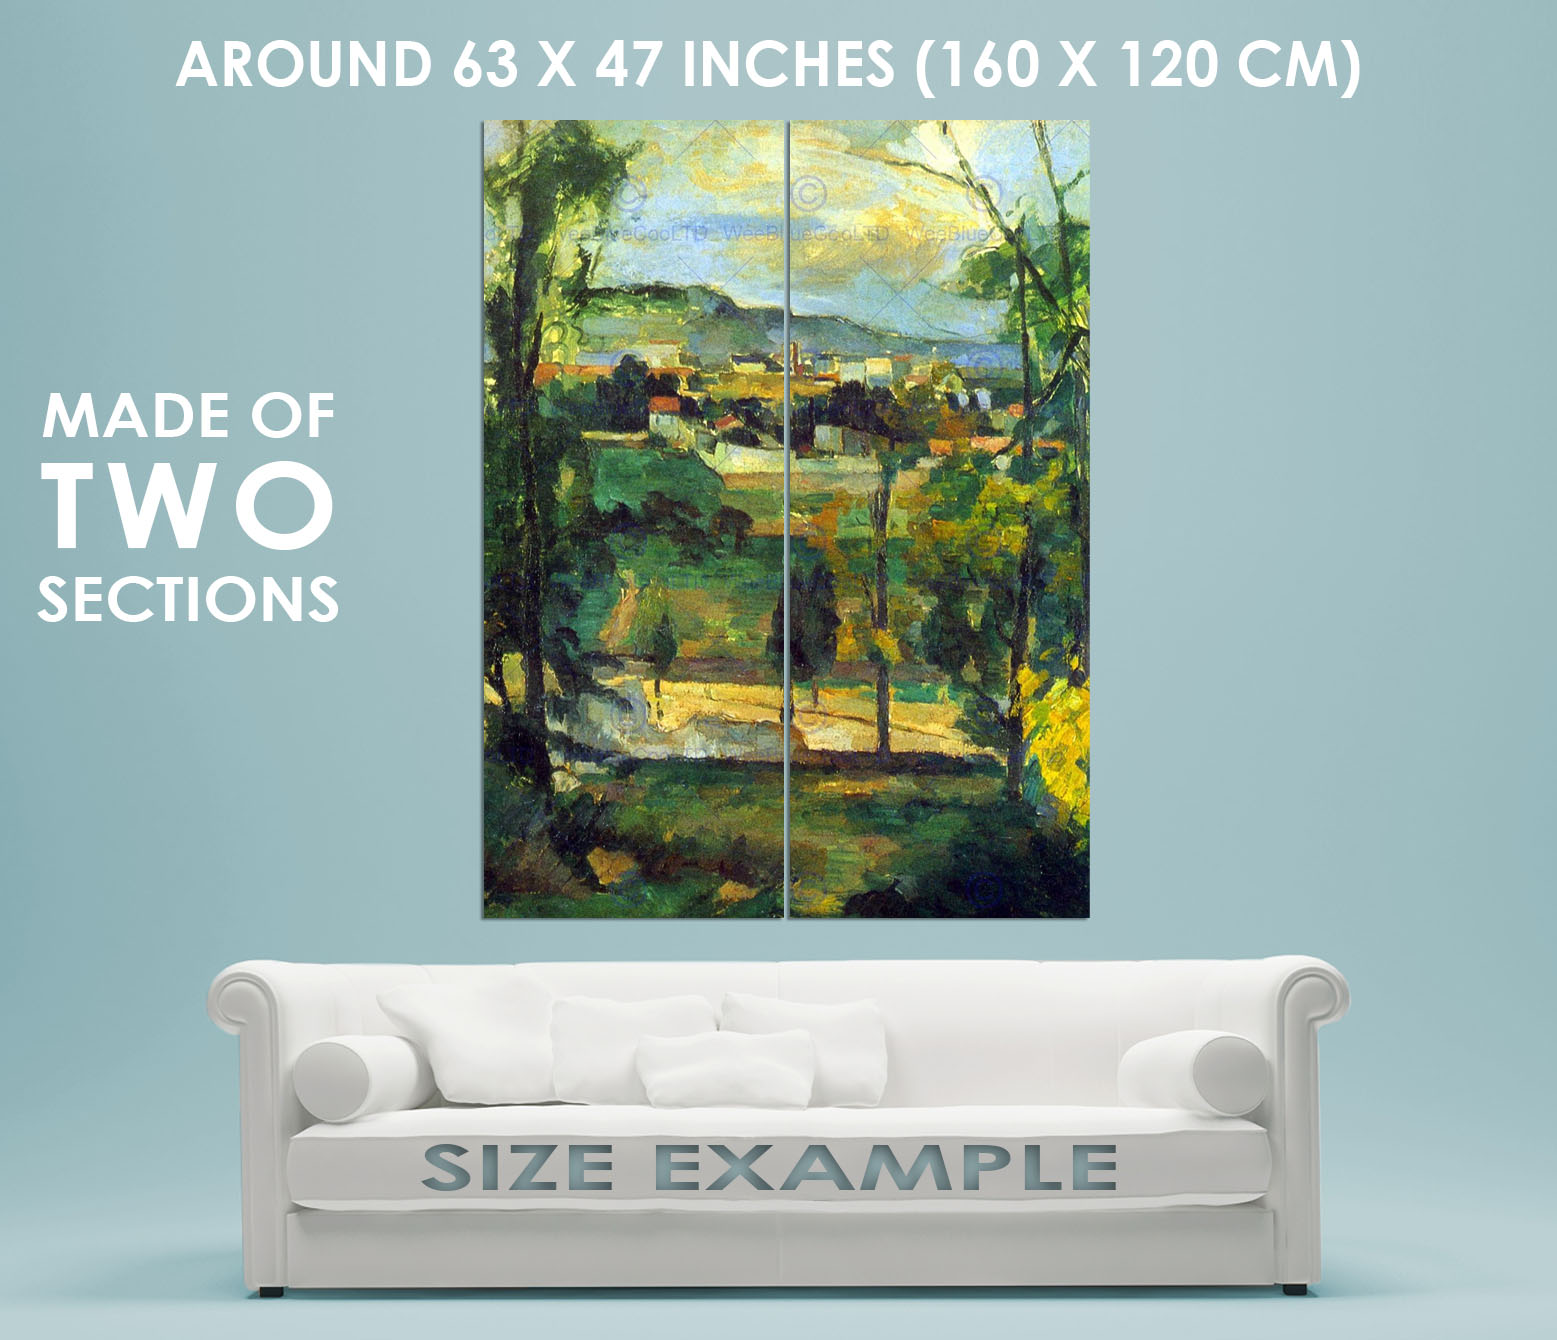 86068-PAUL-CEZANNE-VILLAGE-BEHIND-TREES-ILE-DE-OLD-Decor-WALL-PRINT-POSTER-FR miniature 6